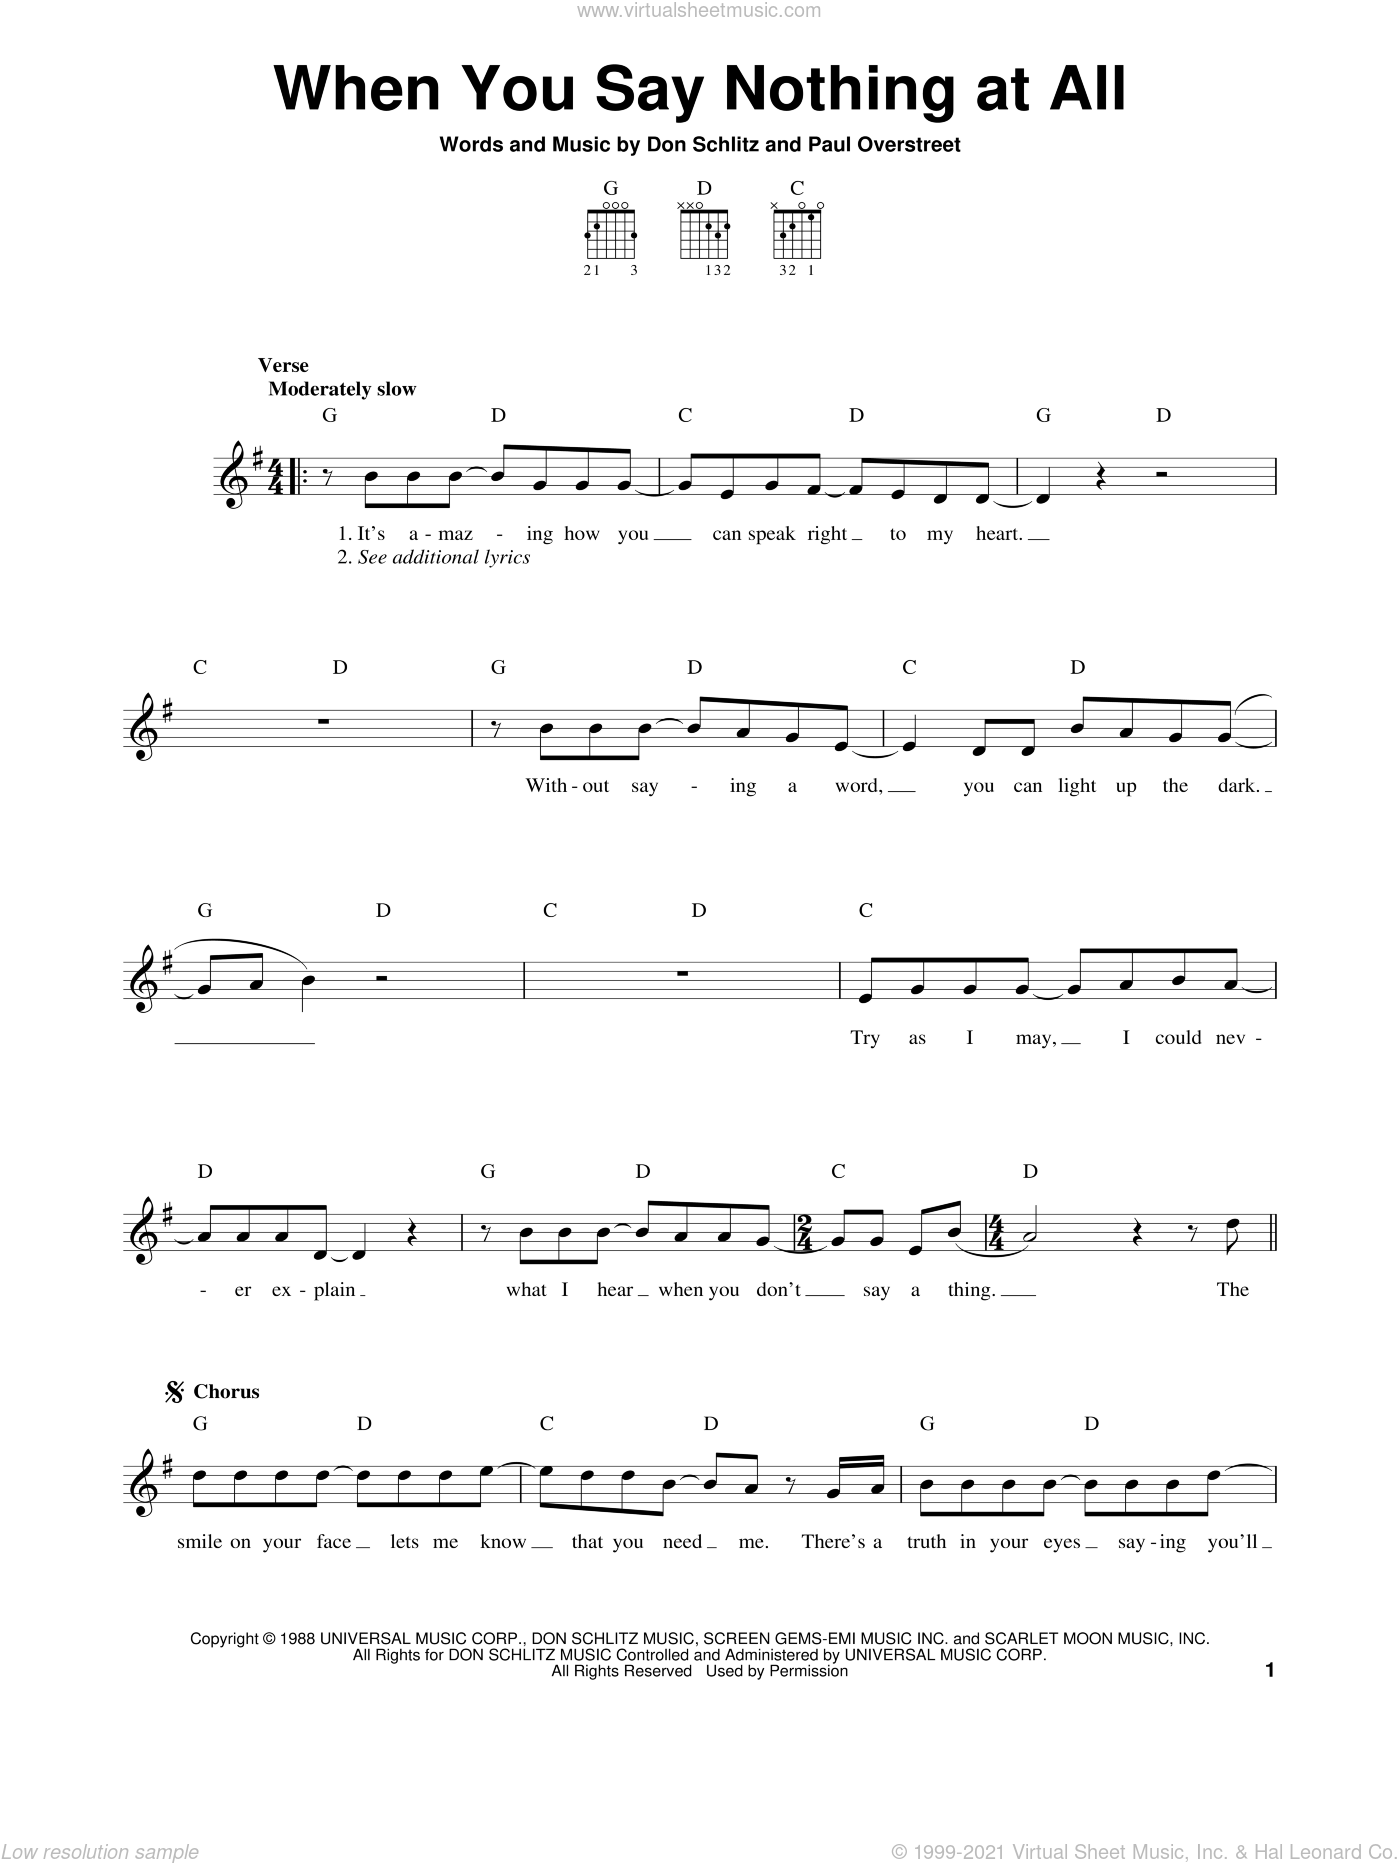 When You Say Nothing At All sheet music for guitar solo (chords) by Alison Krauss, Alison Krauss & Union Station, Keith Whitley, Don Schlitz and Paul Overstreet, easy guitar (chords)